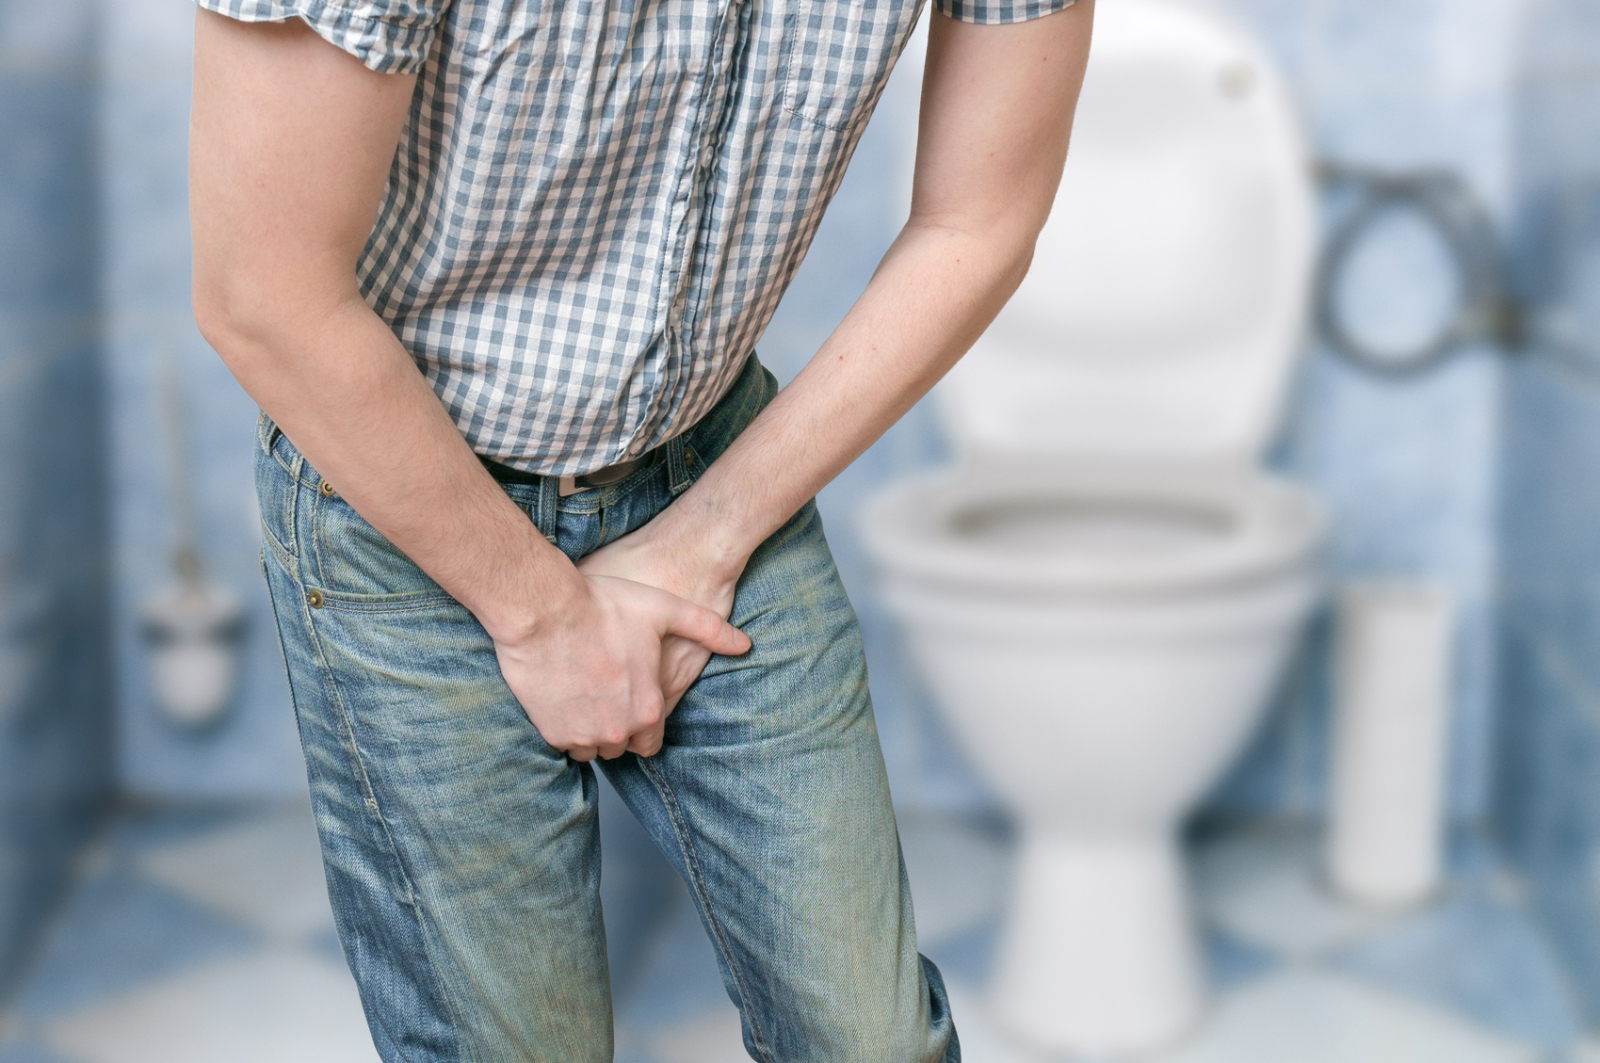 Can prostatis cause penis pain